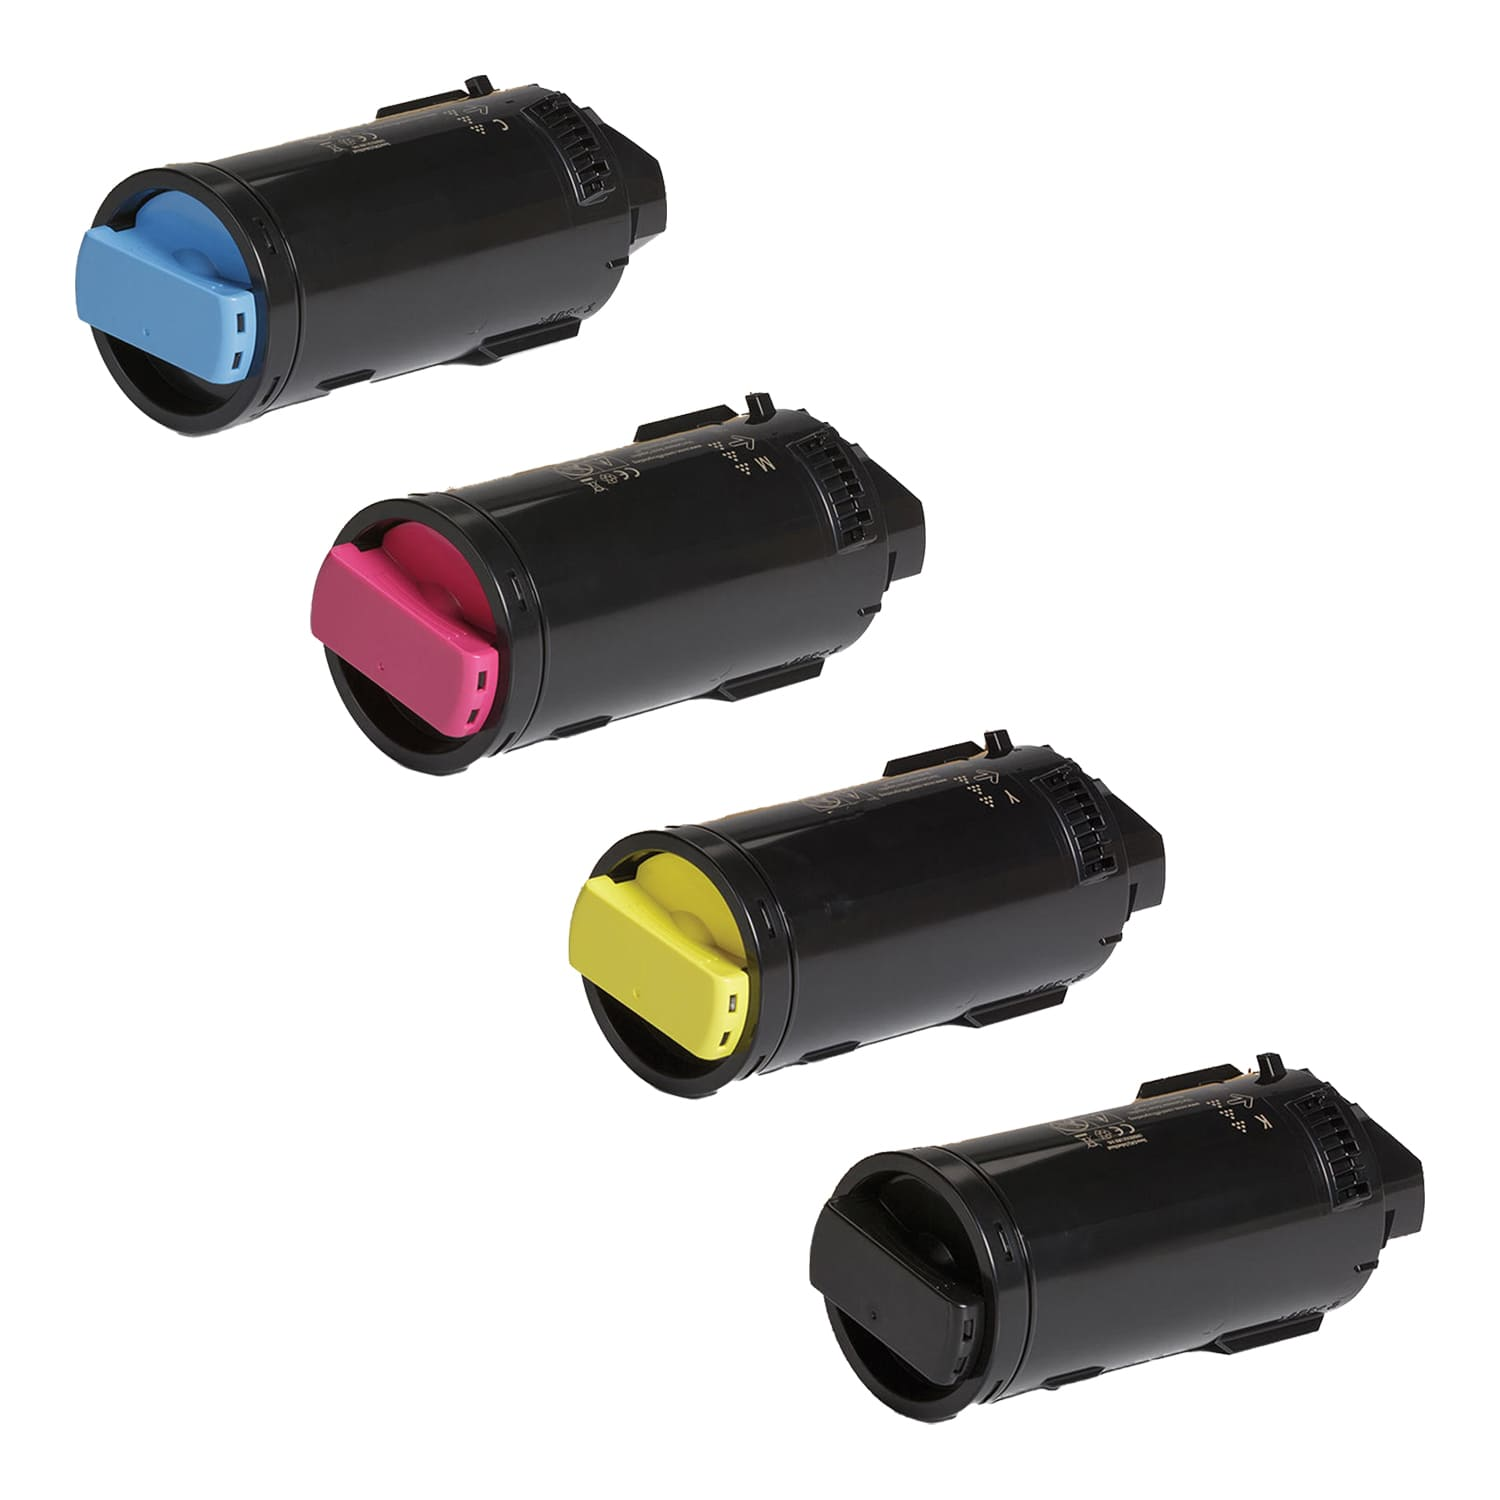 Compatible Xerox C500-C505 Toner Extra High Capacity Pack - 4 Cartridges